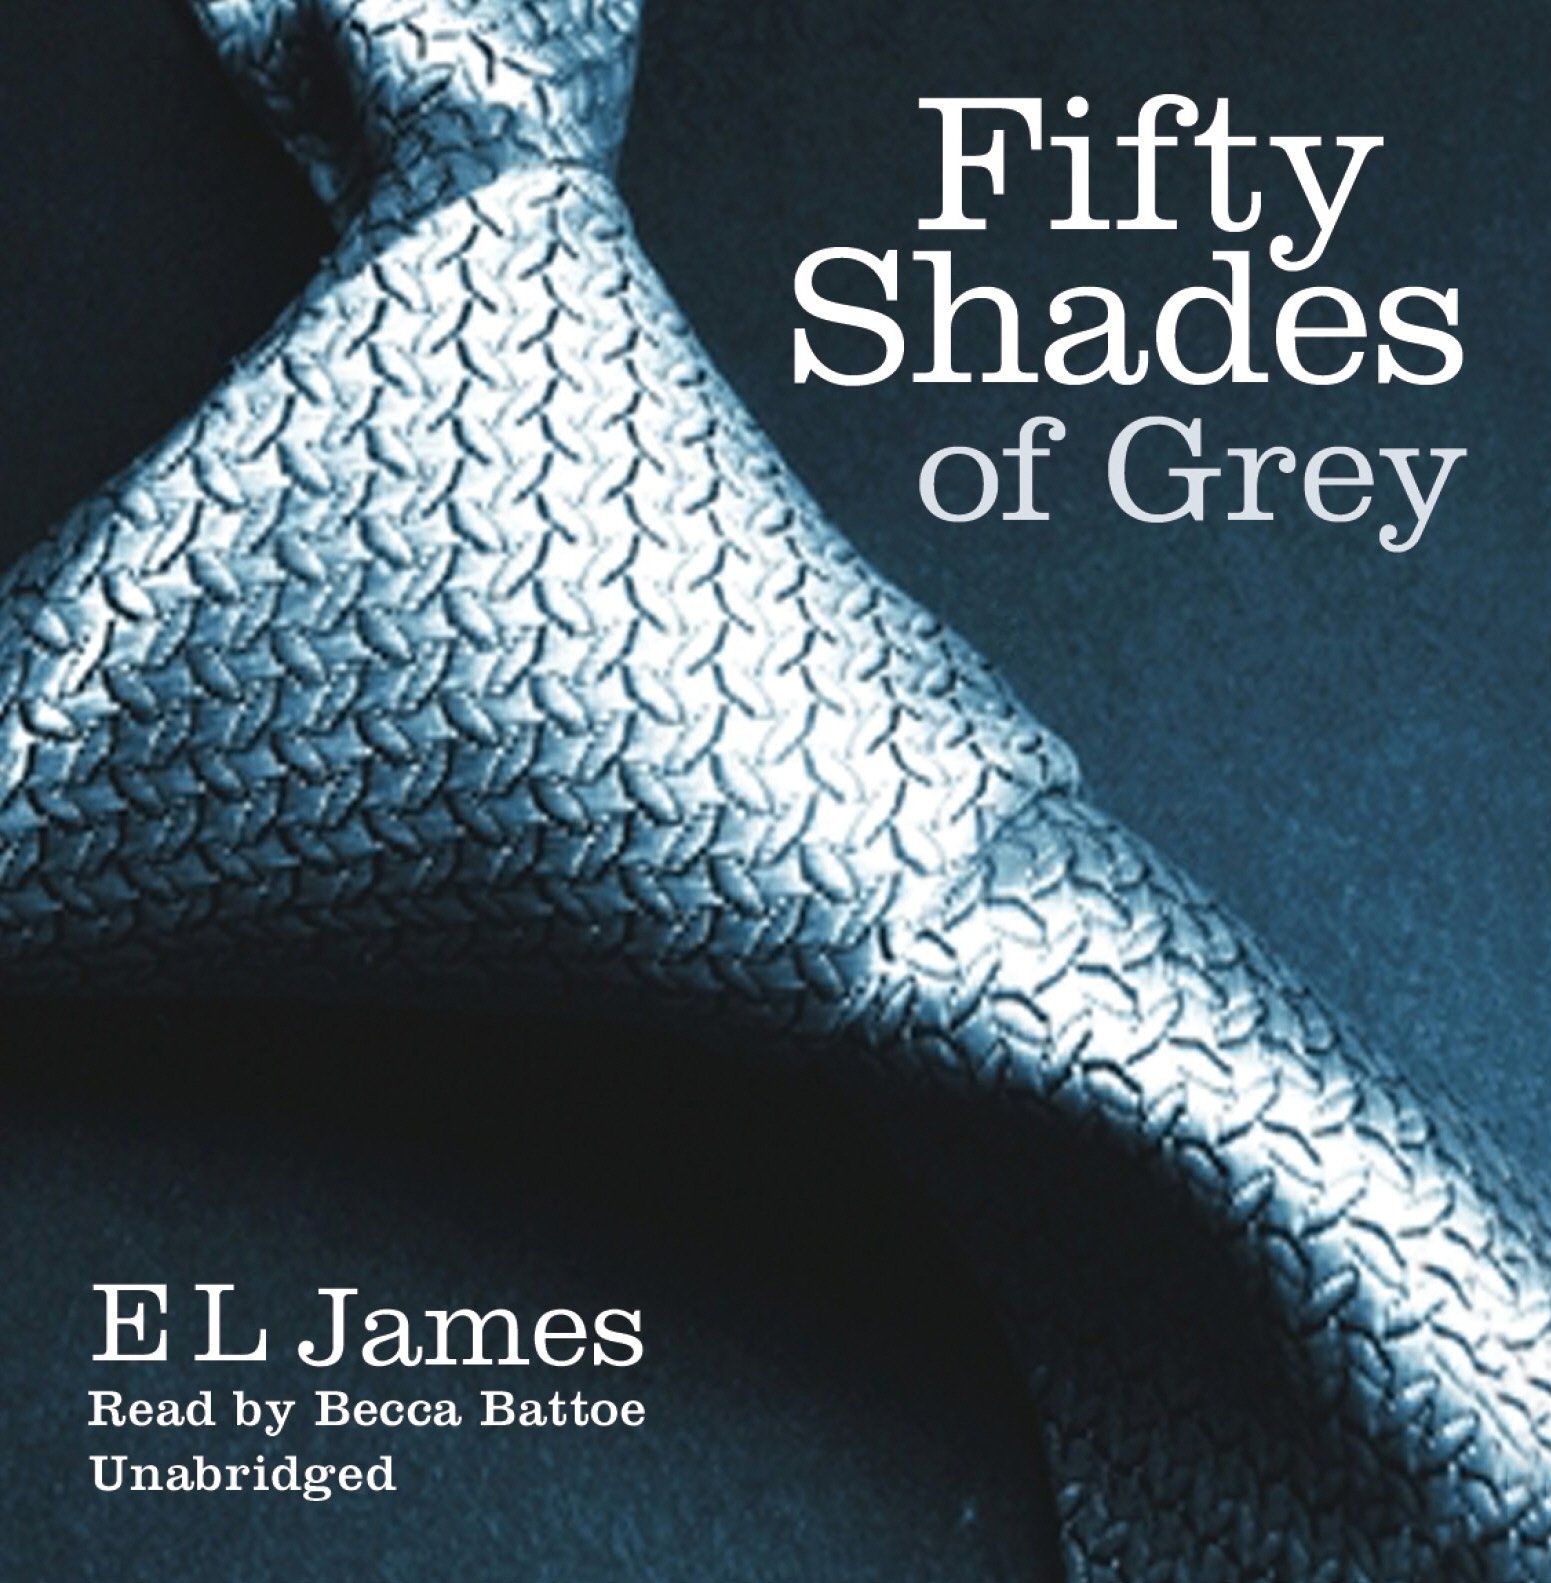 buy fifty shades of grey book online at low prices in buy fifty shades of grey book online at low prices in fifty shades of grey reviews ratings in